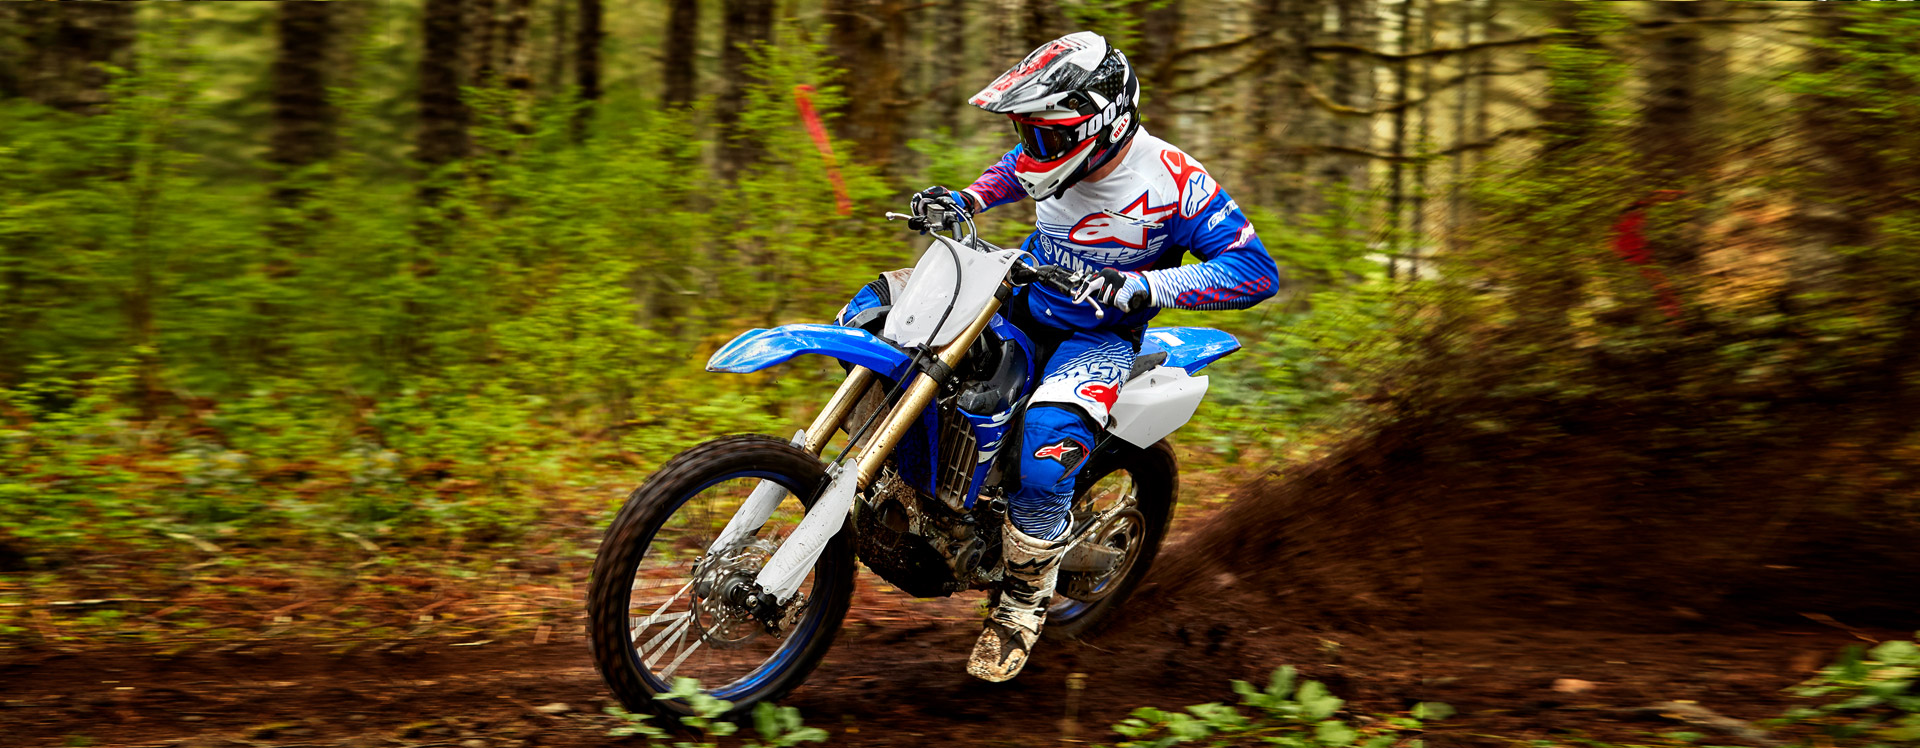 2018 Yamaha YZ250FX Cross Country Motorcycle - Model Home